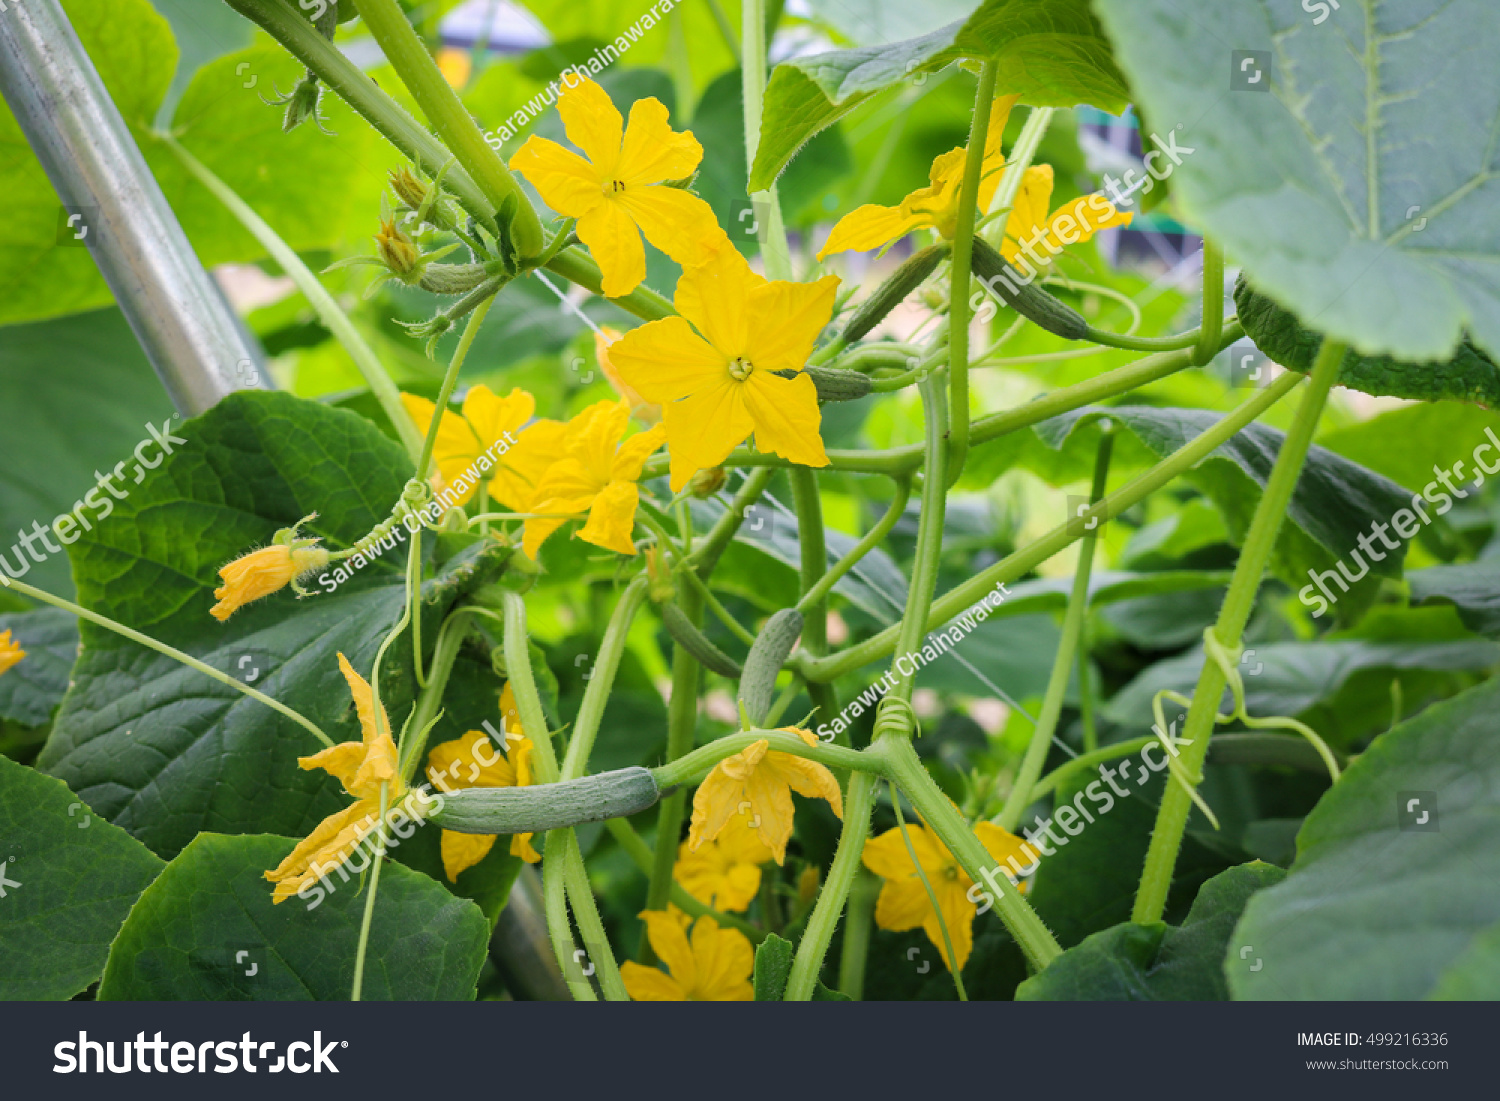 Yellow Female Flower Cucumber Field Plant Stock Photo Royalty Free